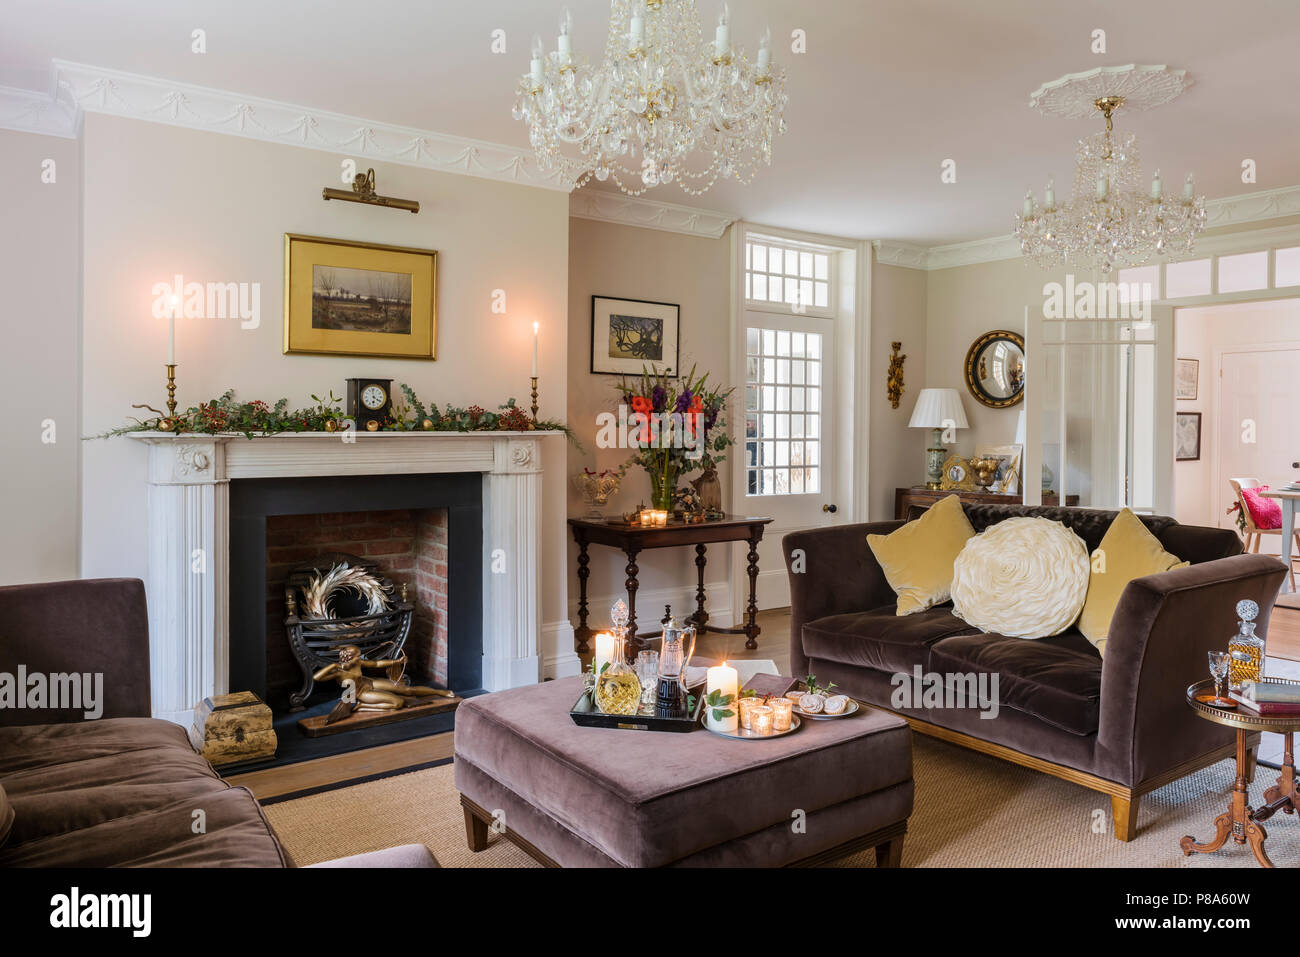 Brown Velvet Sofa With Yellow Cushions In Renovated Regency Living